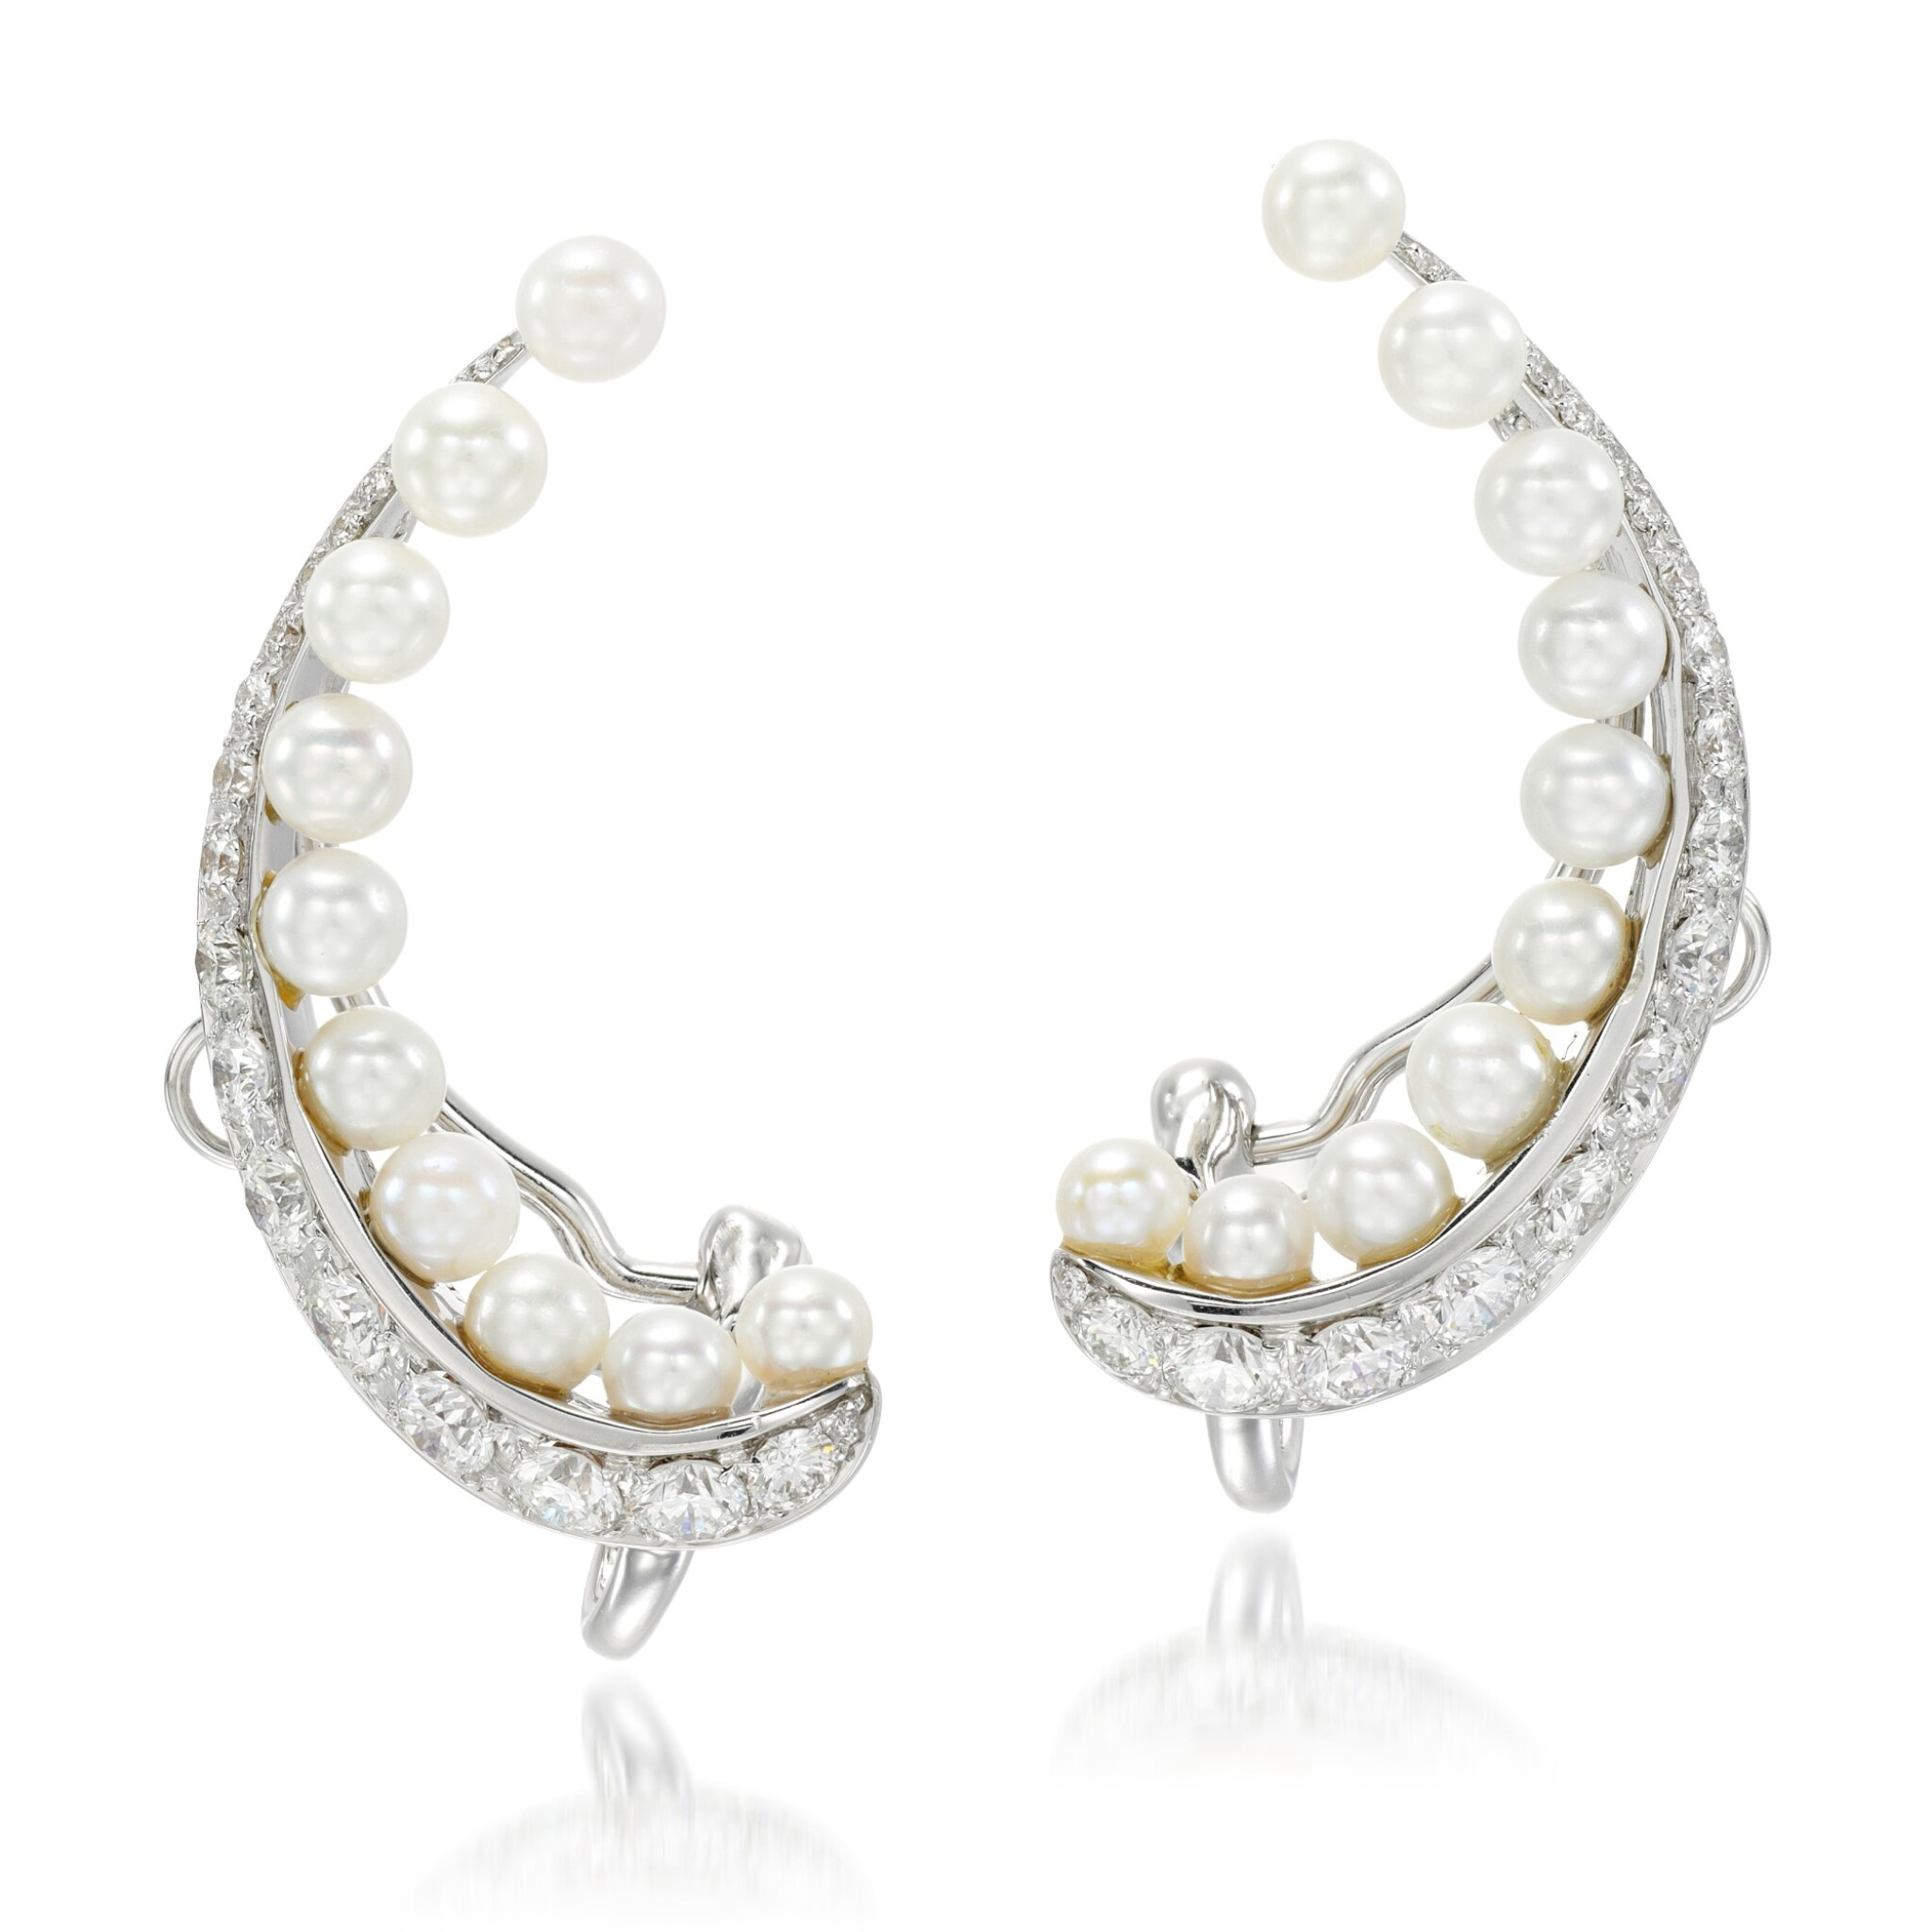 View 1 of Lot 25. Pair of cultured pearl and diamond ear clips, 'Pearl Rose'.